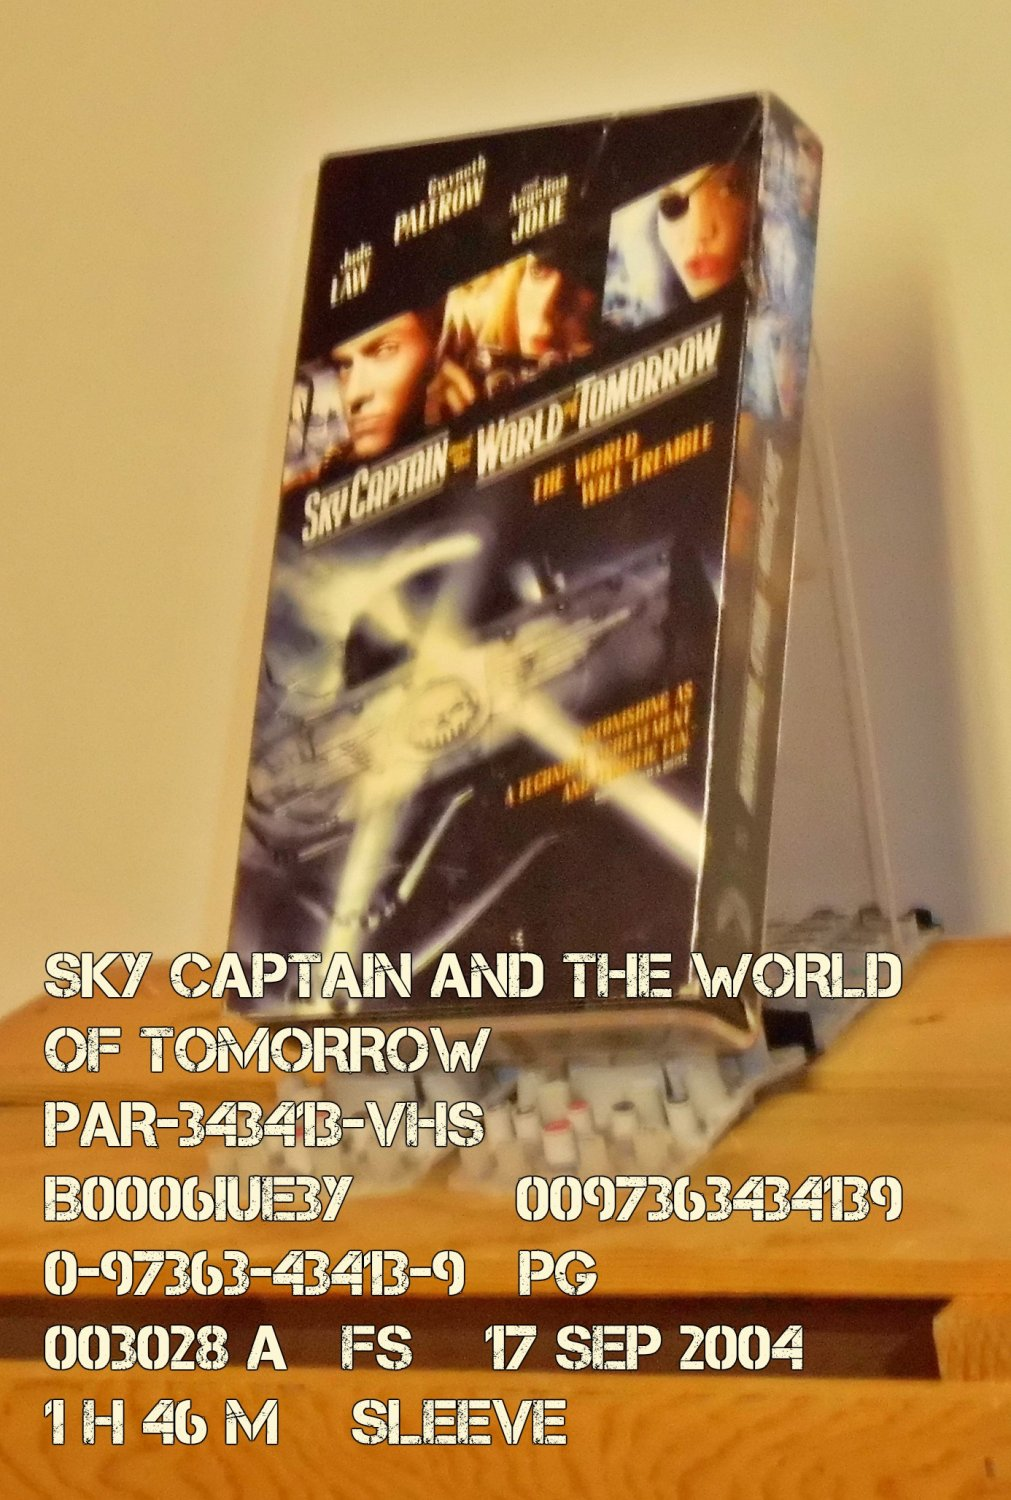 VHS - SKY CAPTAIN AND THE WORLD OF TOMORROW